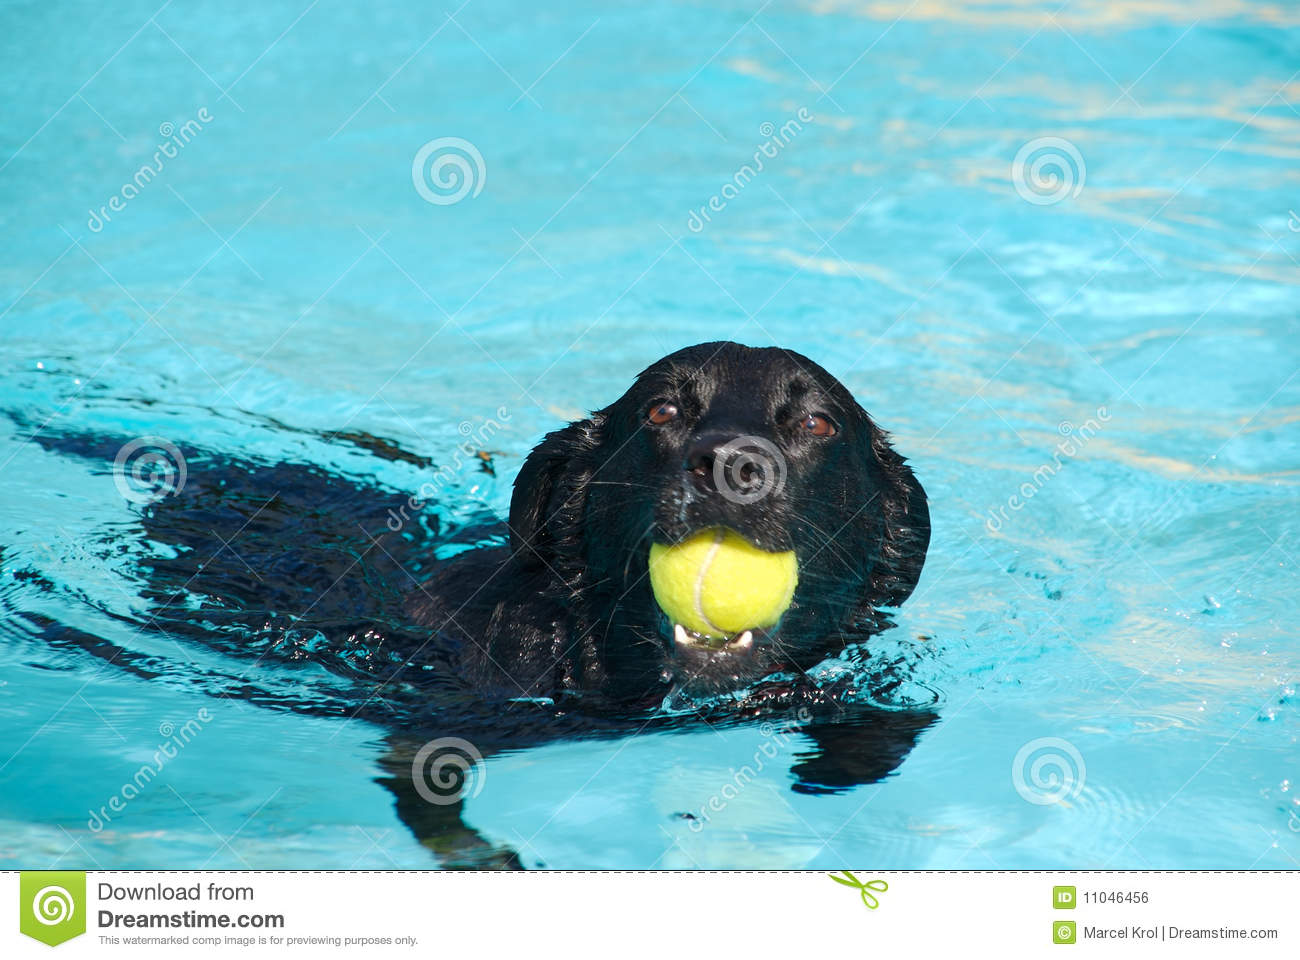 labrador dog in water with ball royalty free stock image   image